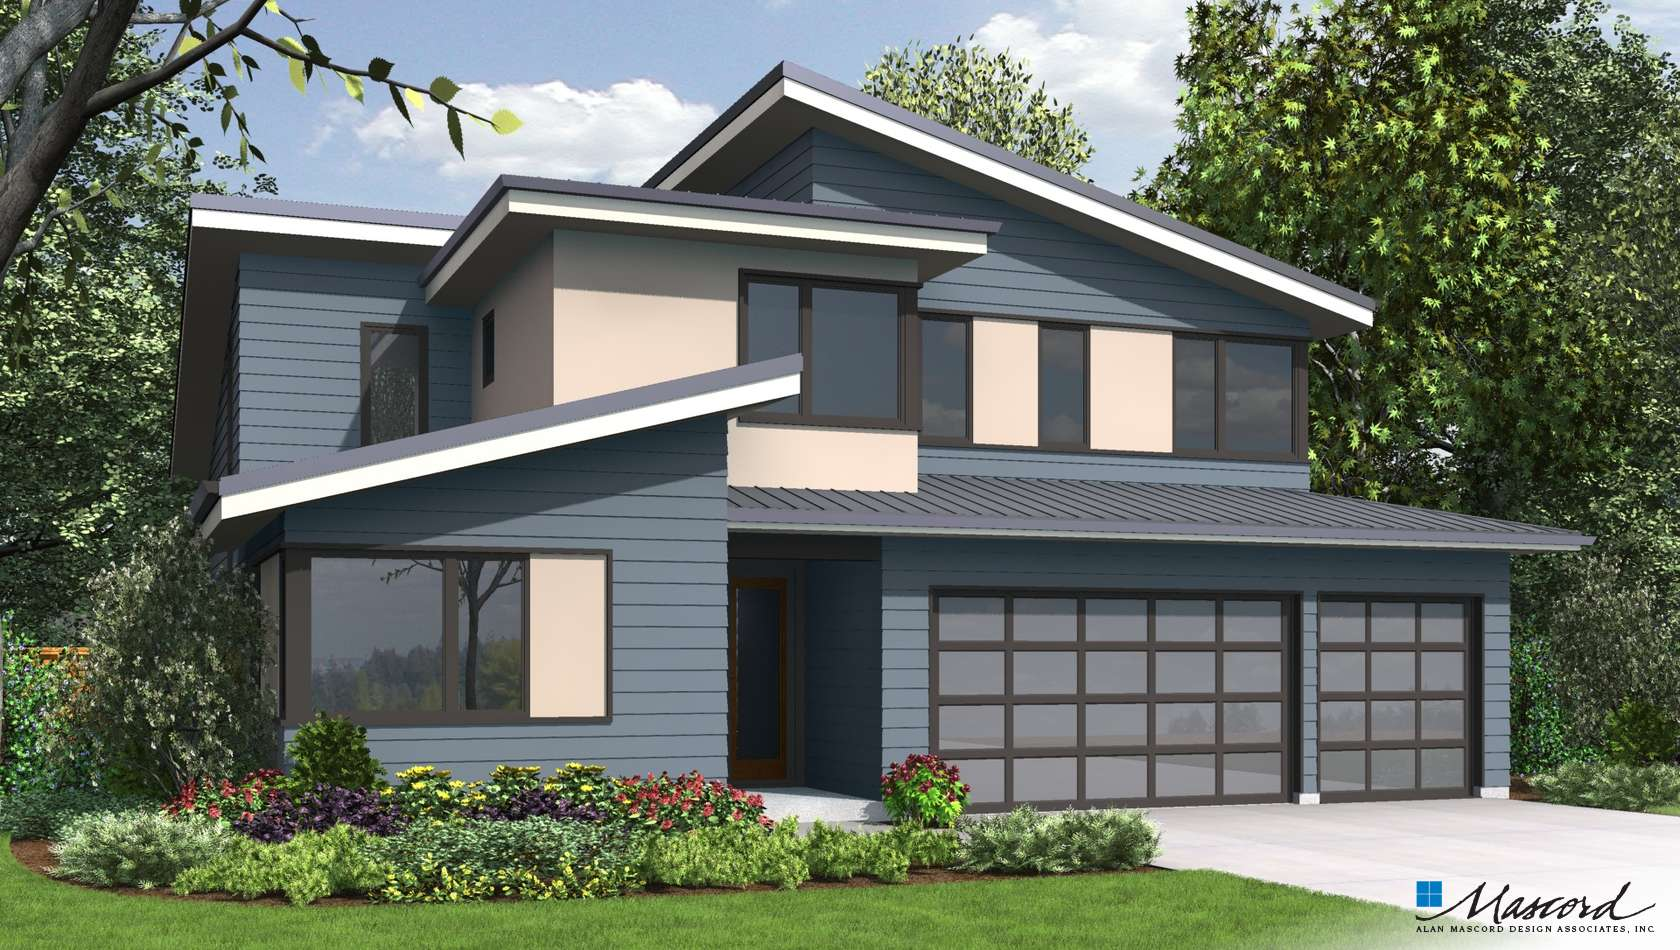 Main image for house plan 22210: The Sweetwater